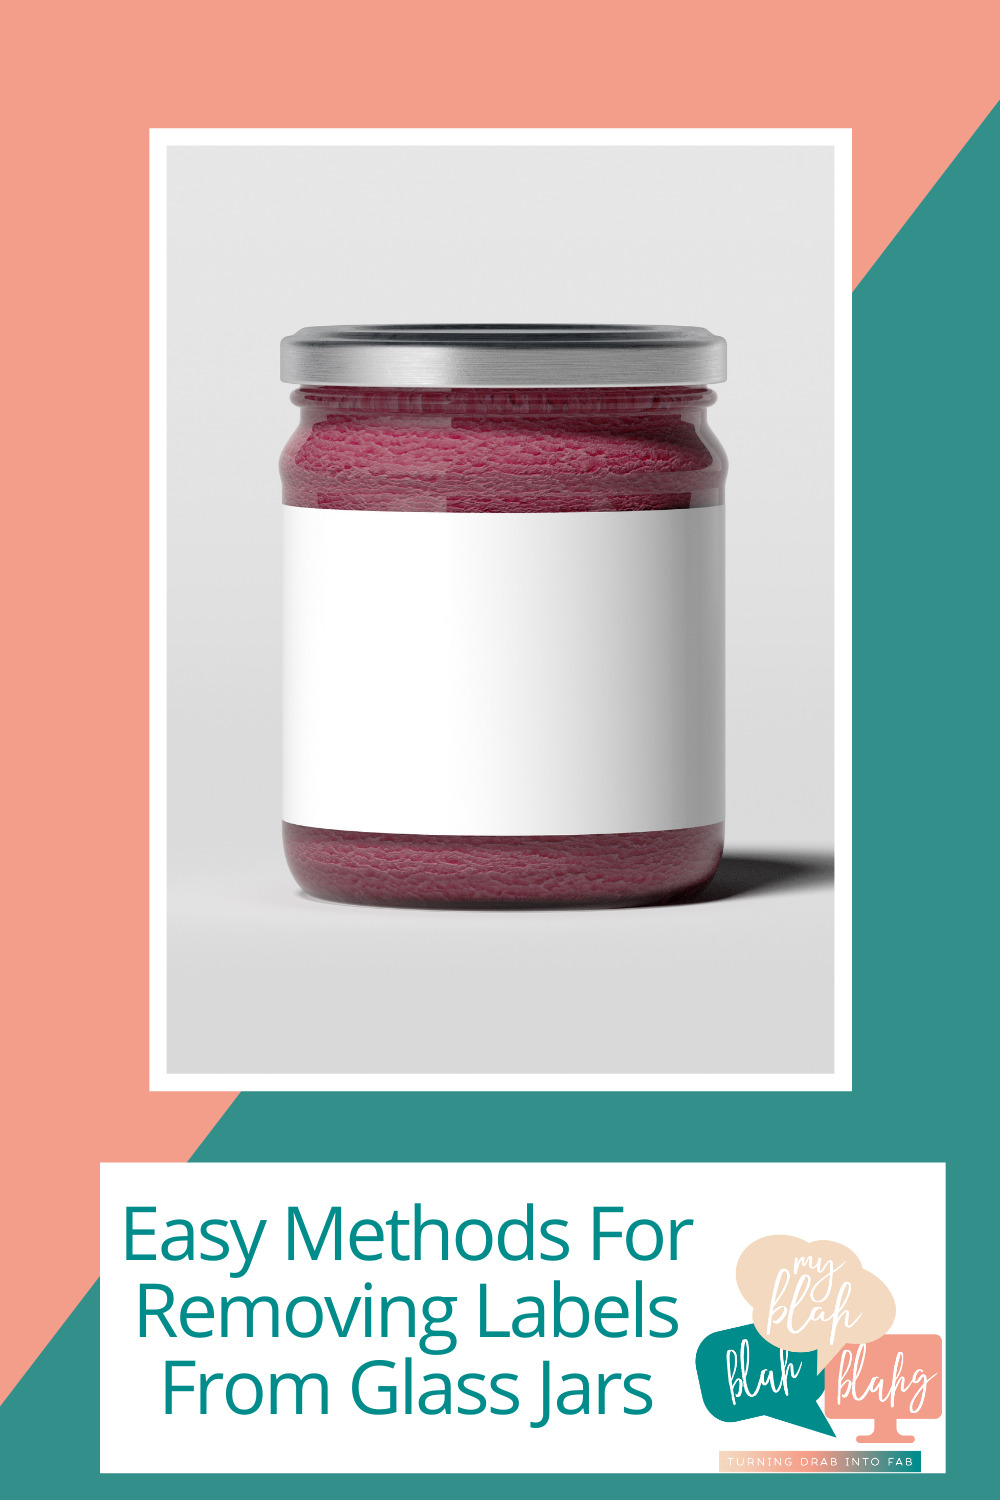 Myblahblahblahg.com is loaded with ideas for DIYs and crafts. Find out ways you can make something new with things you already have. Glass jars and bottles are some of the most versatile items you can repurpose. Learn how you can remove any label from glass for your next project.